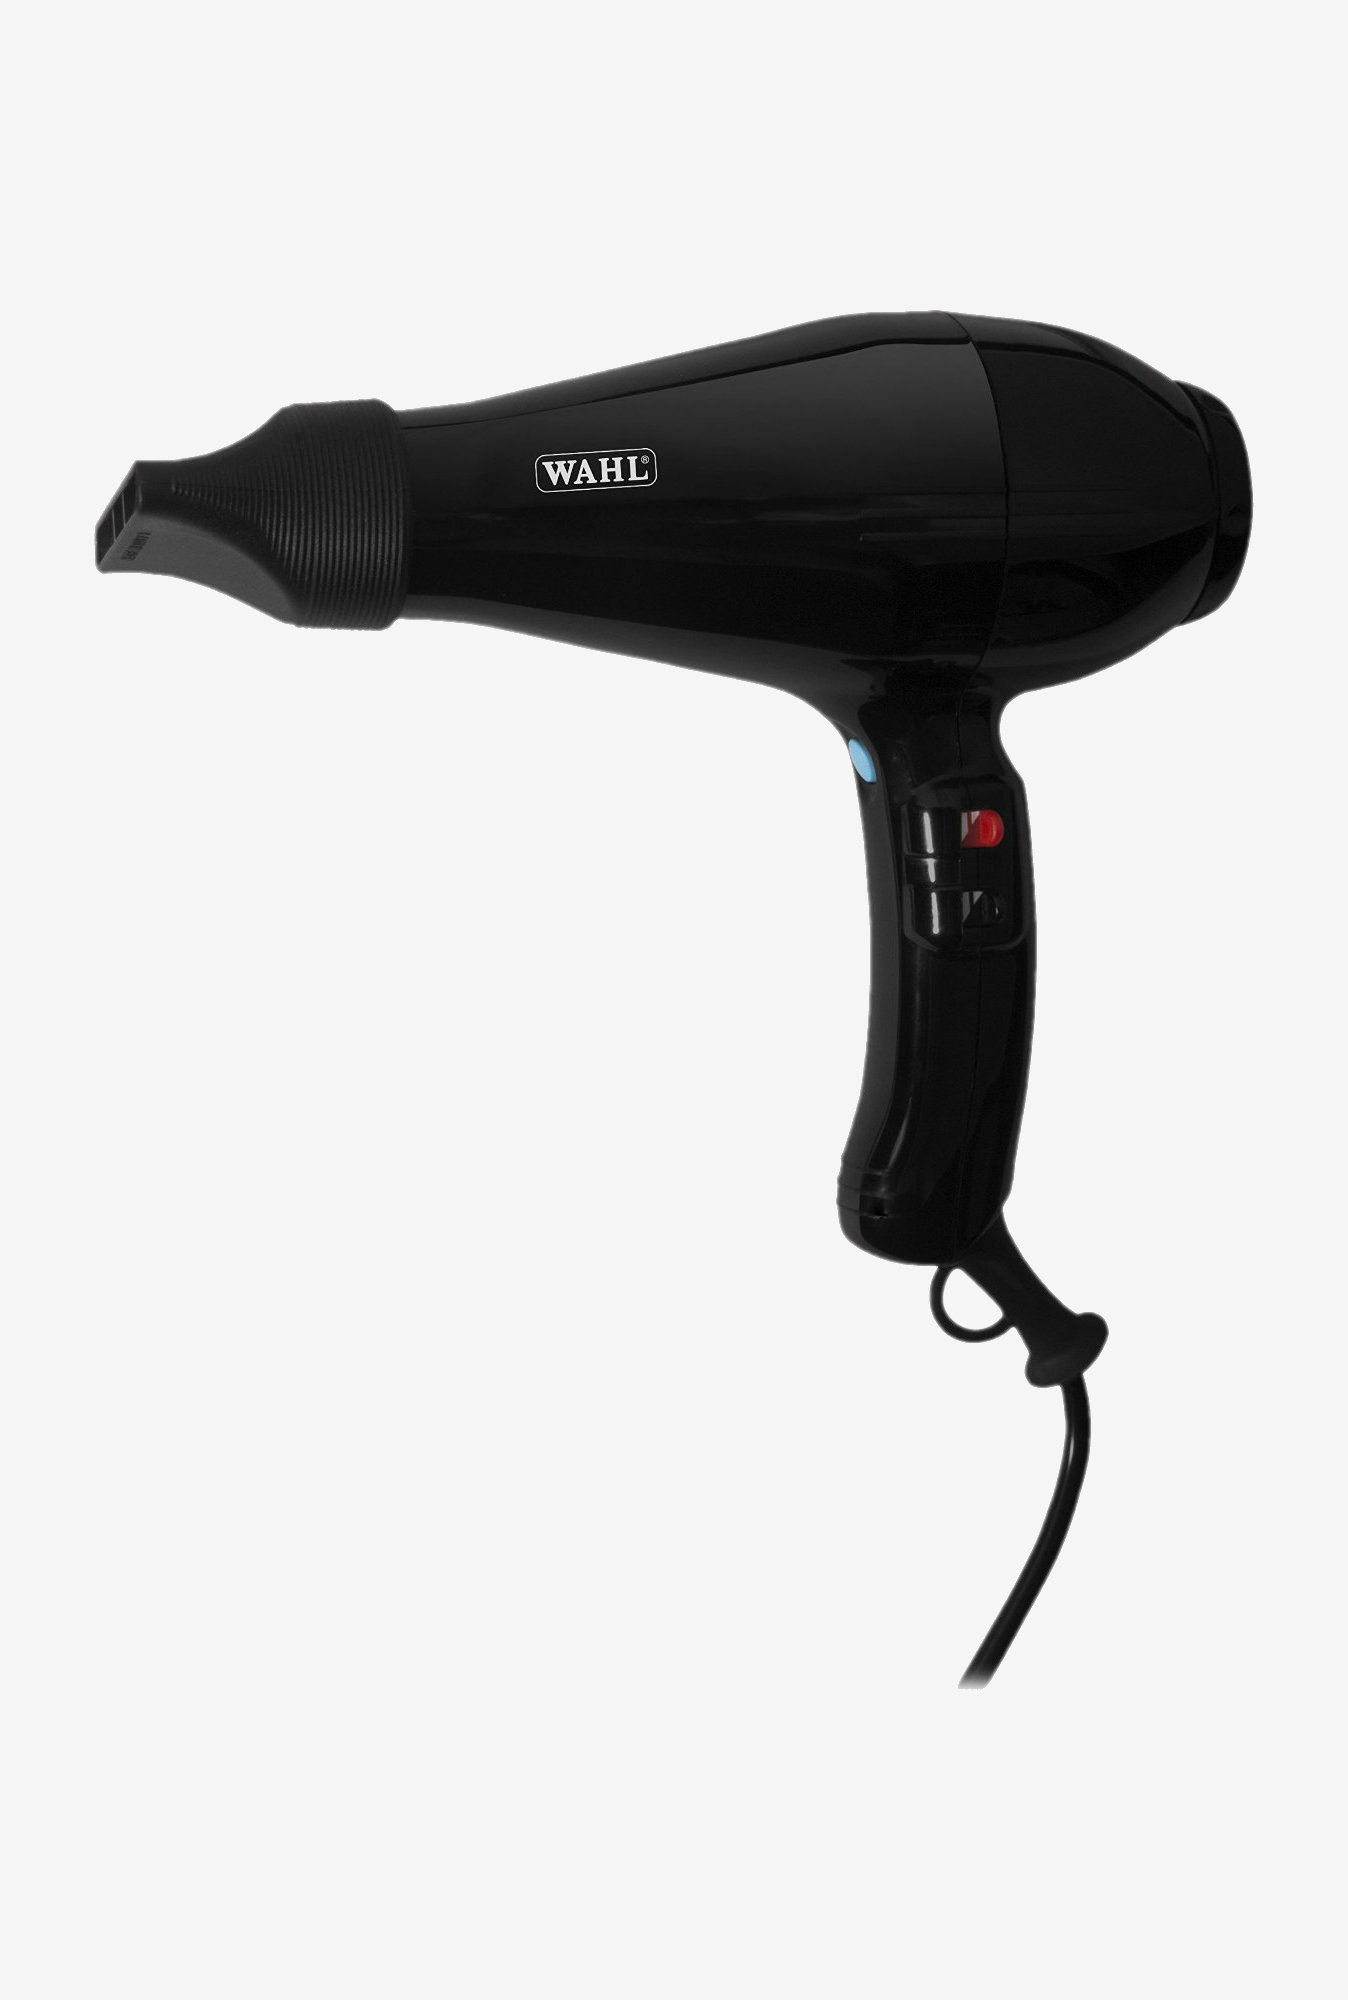 Wahl 5500-024 Power Dry Hair Dryer